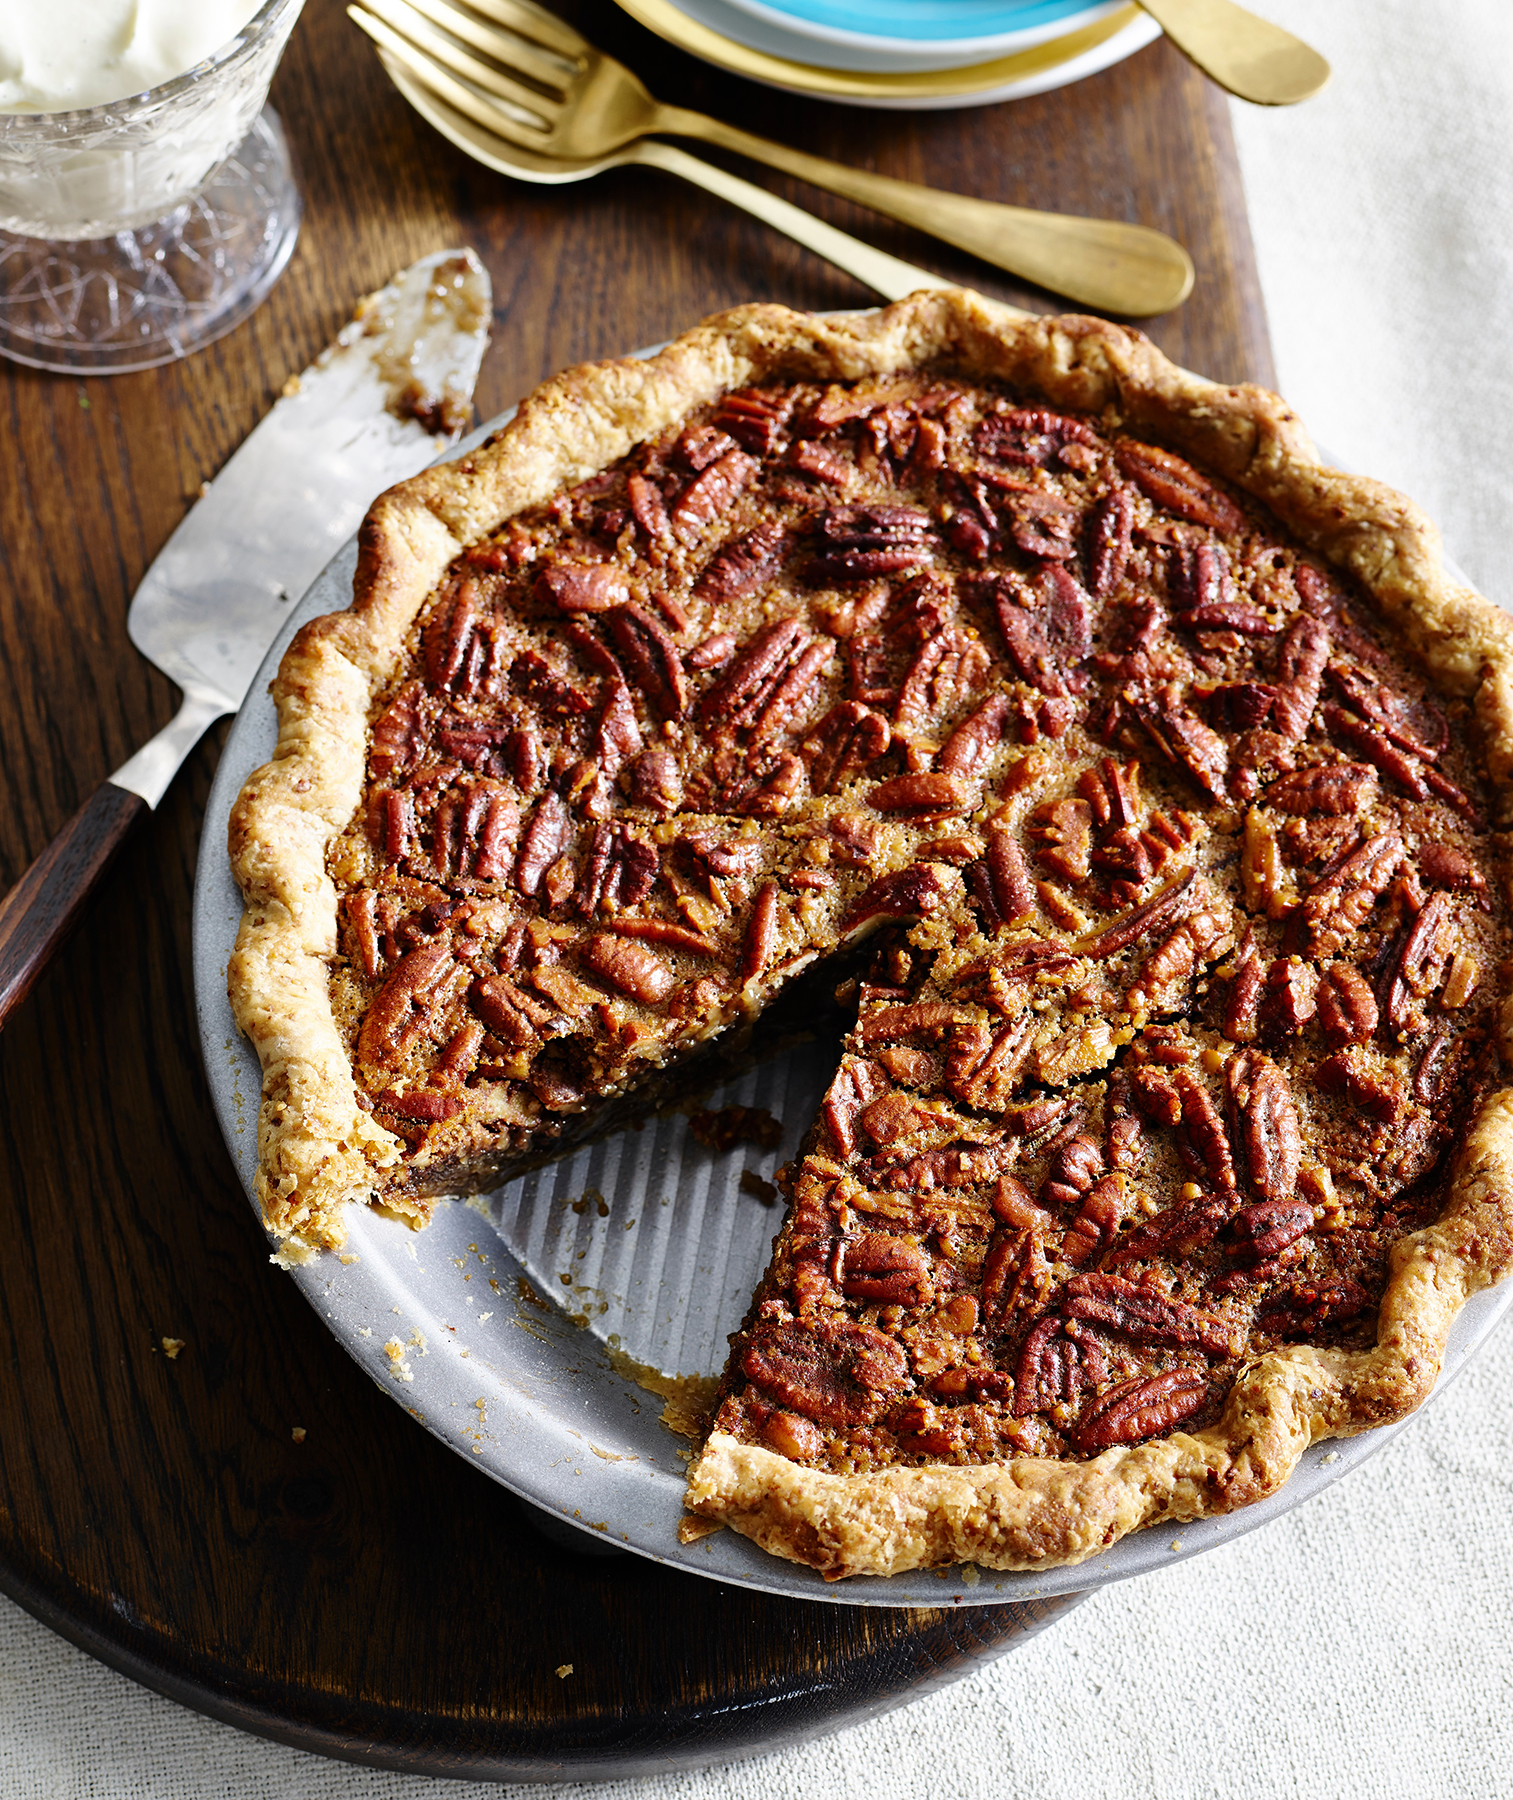 How to Tell If Pecan Pie Is Done Without Cutting Into It